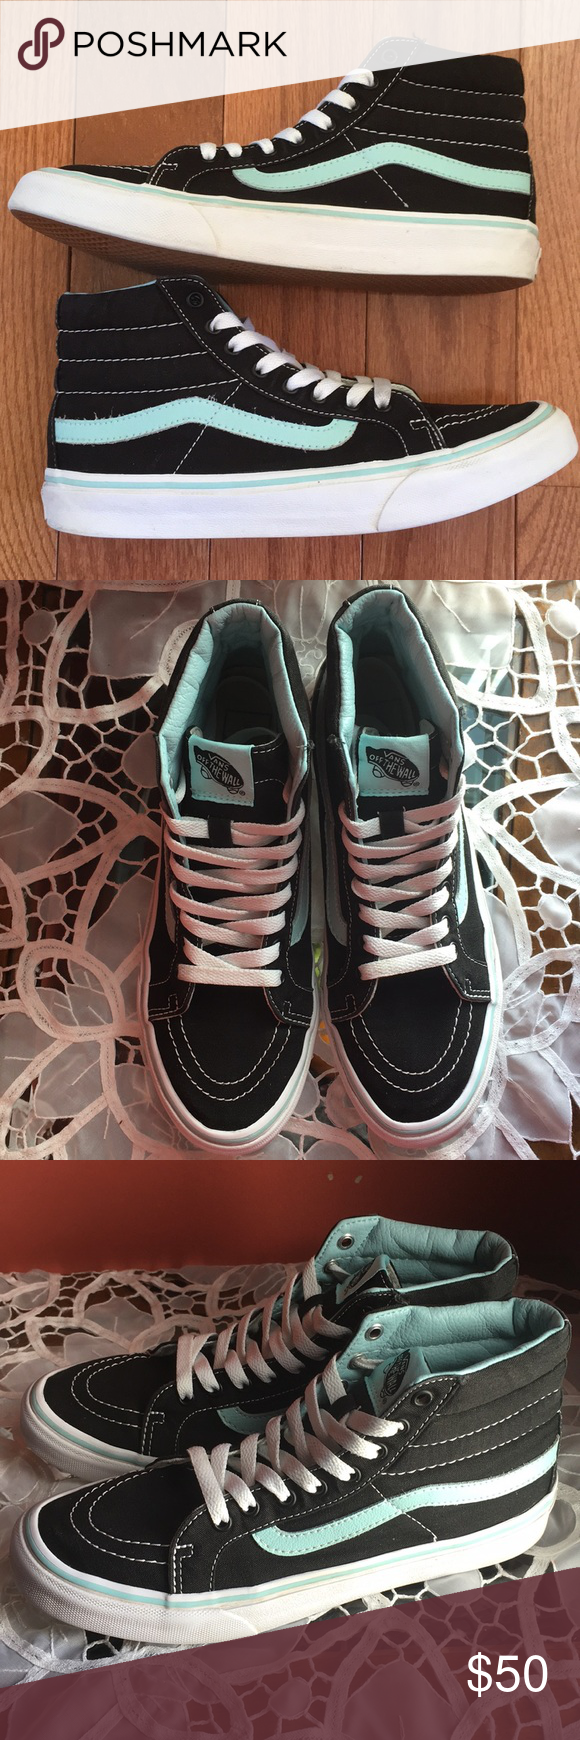 b8f544666f Vans Sk8 Hi High Tops Blue Stripe BRAND NEW CONDITION (faded heel logo) Size